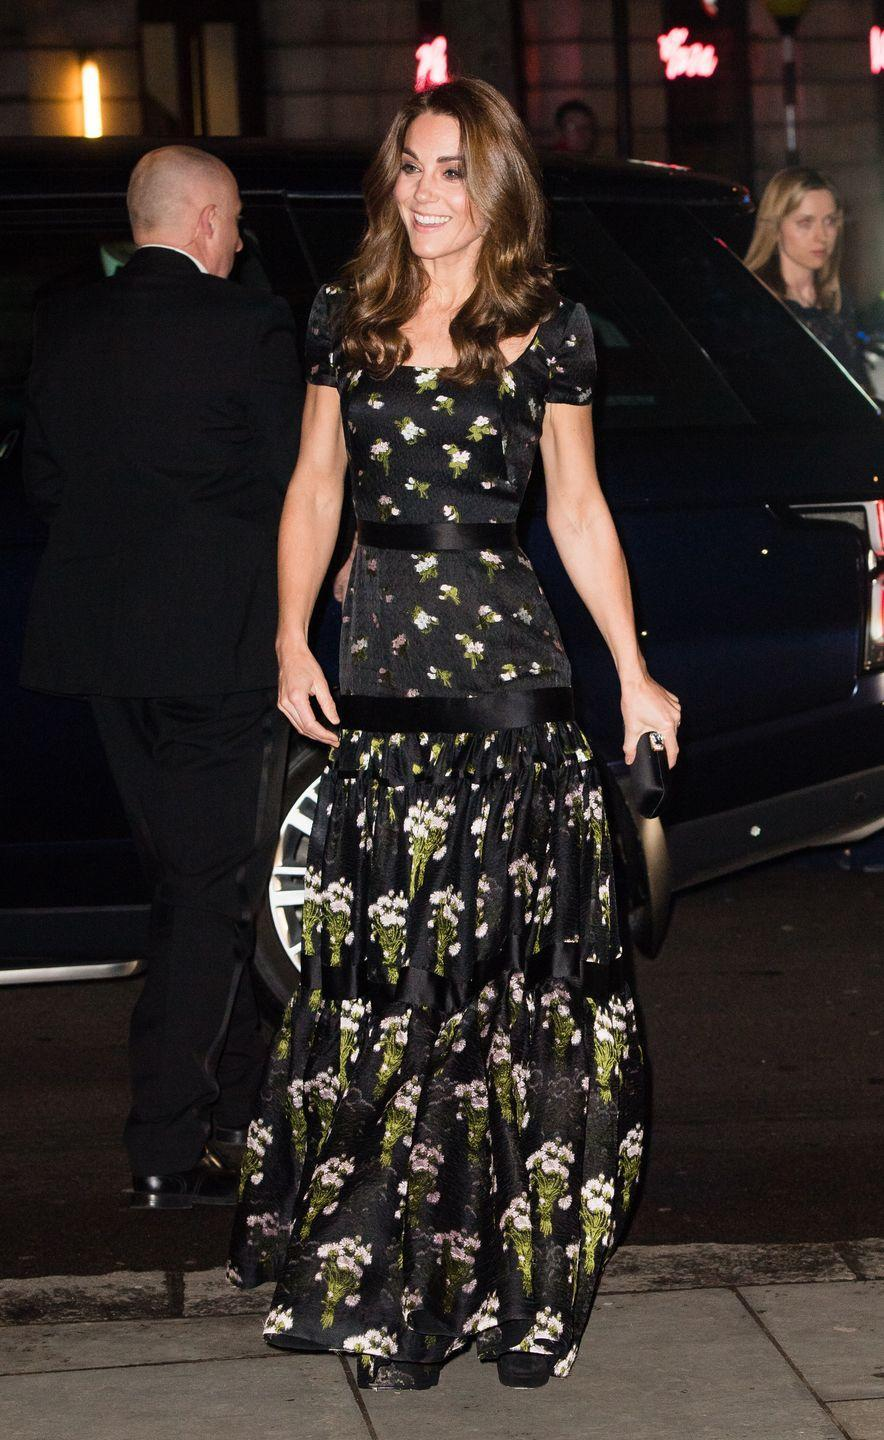 <p>The Duchess chose this black floral dress, which she originally wore to the 2017 BAFTA awards, for the 2019 National Portrait Gallery Gala. </p>